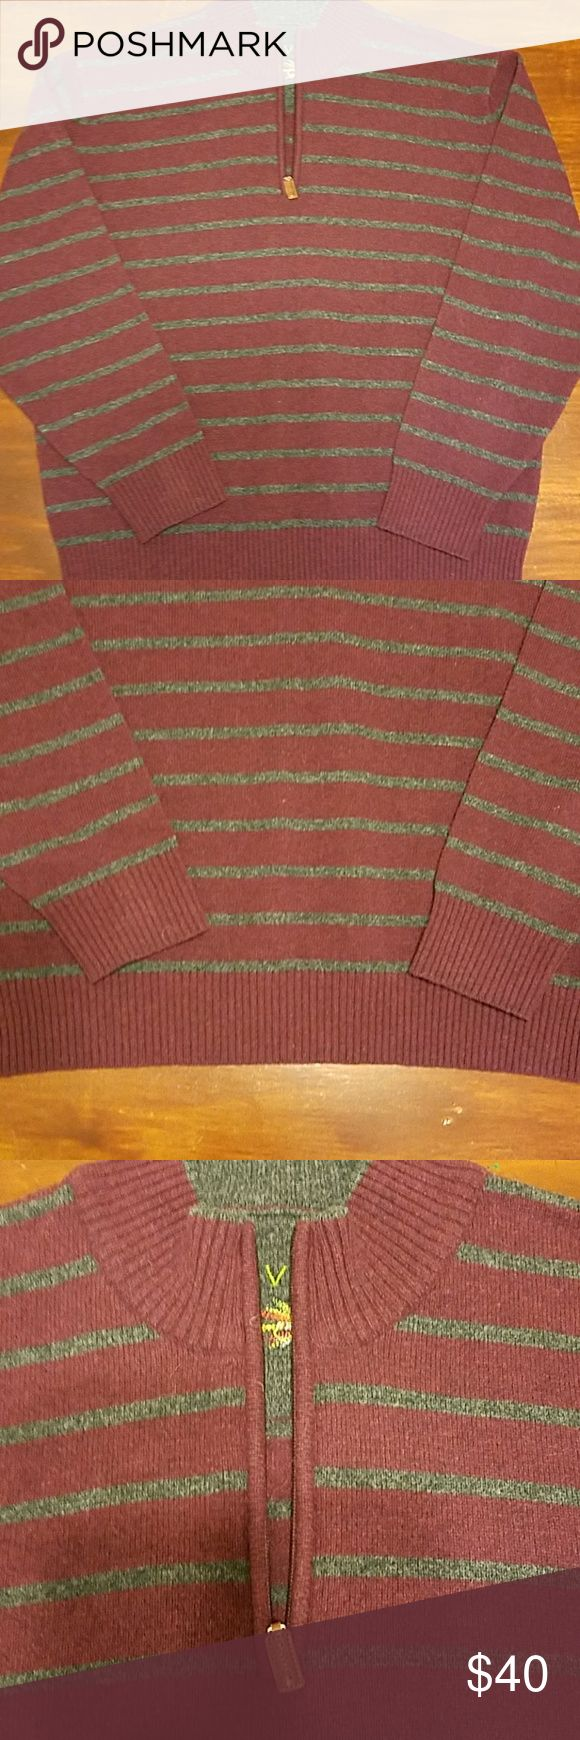 Orvis mens wool sweater SZ XL Orvis 100% lambswool sweater SZ XL. Burgundy and gray. Striped. 1/4 zip. Excellent condition. Very warm, great quality. Smoke and pet free home. Orvis Sweaters Zip Up